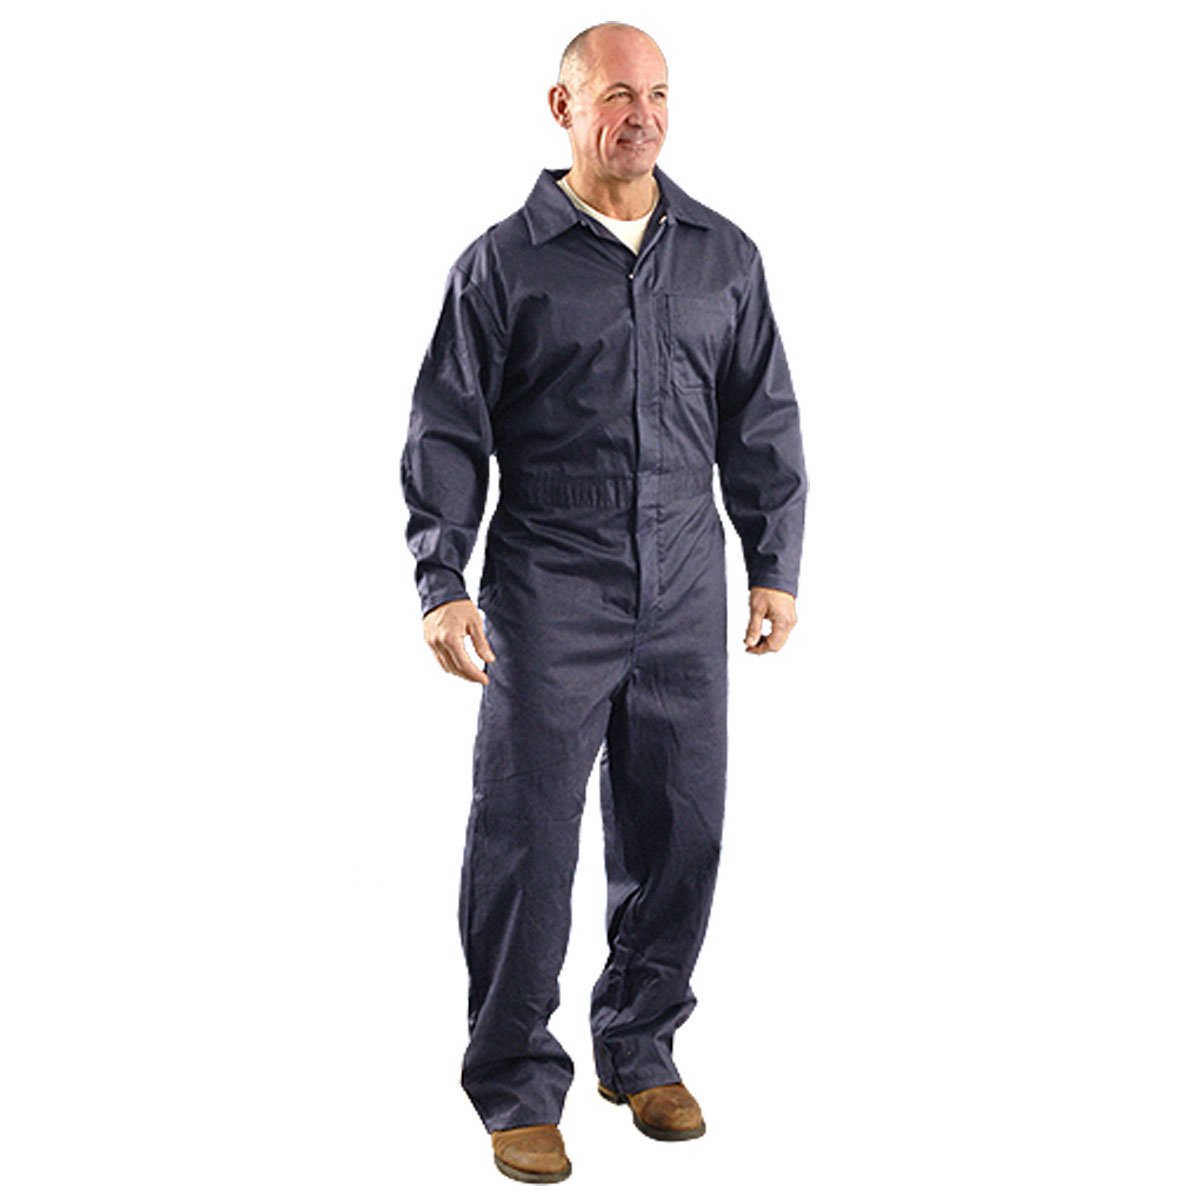 Occunomix Gulfport 6Oz Flame Resistantc Coveralls 4X Navy Blue